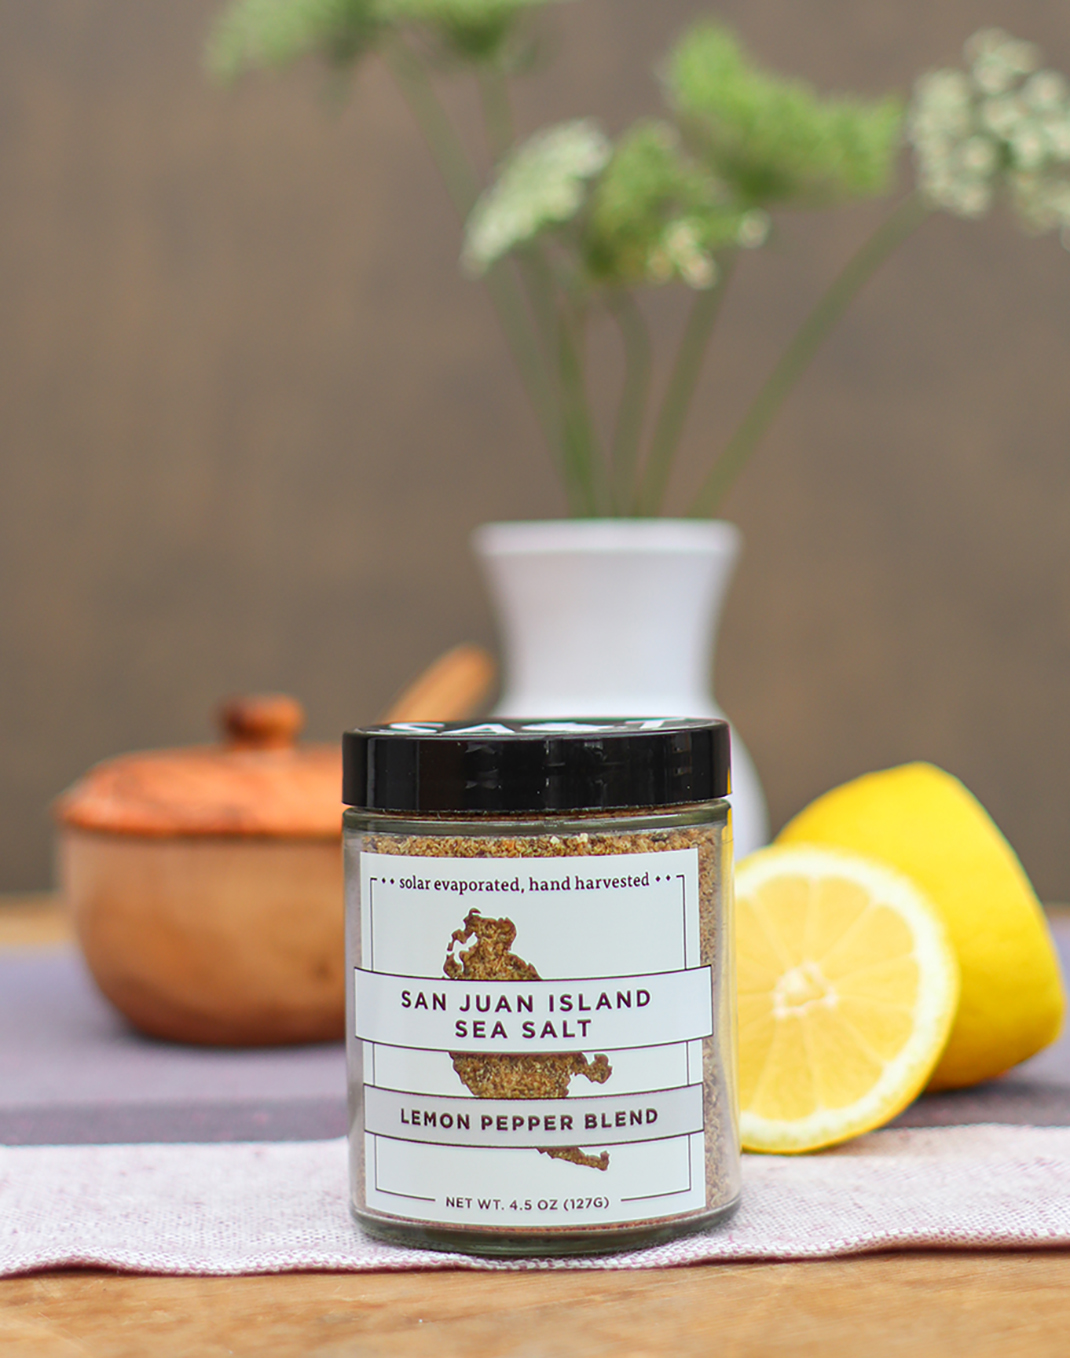 San Juan Island Sea Salt Lemon Pepper Blend